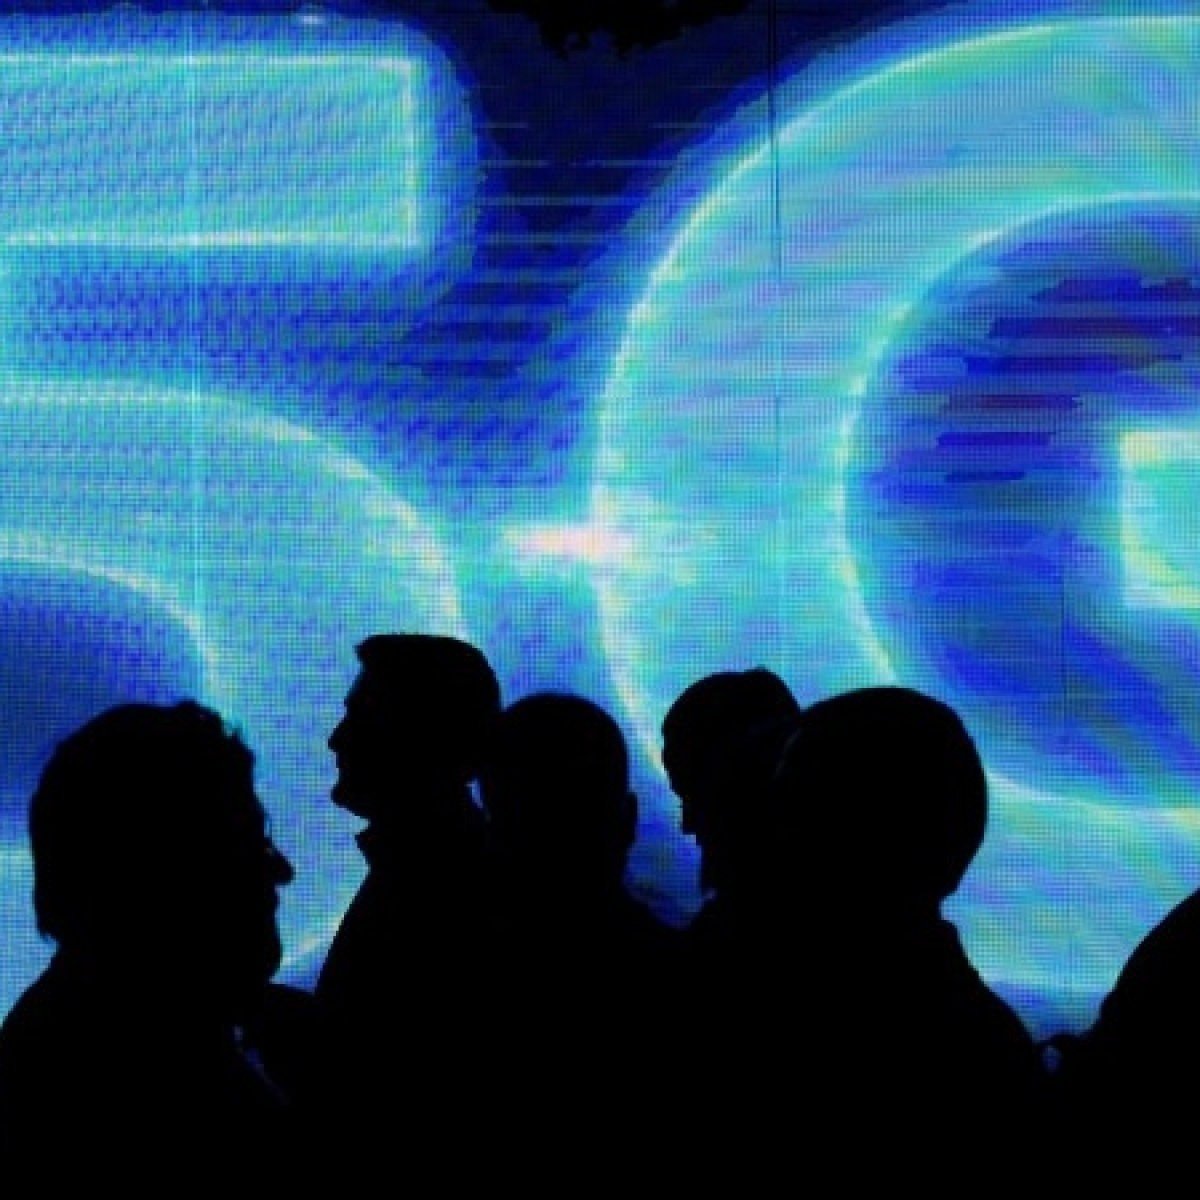 5G to bring growth for smartphones players in 2020: IDC